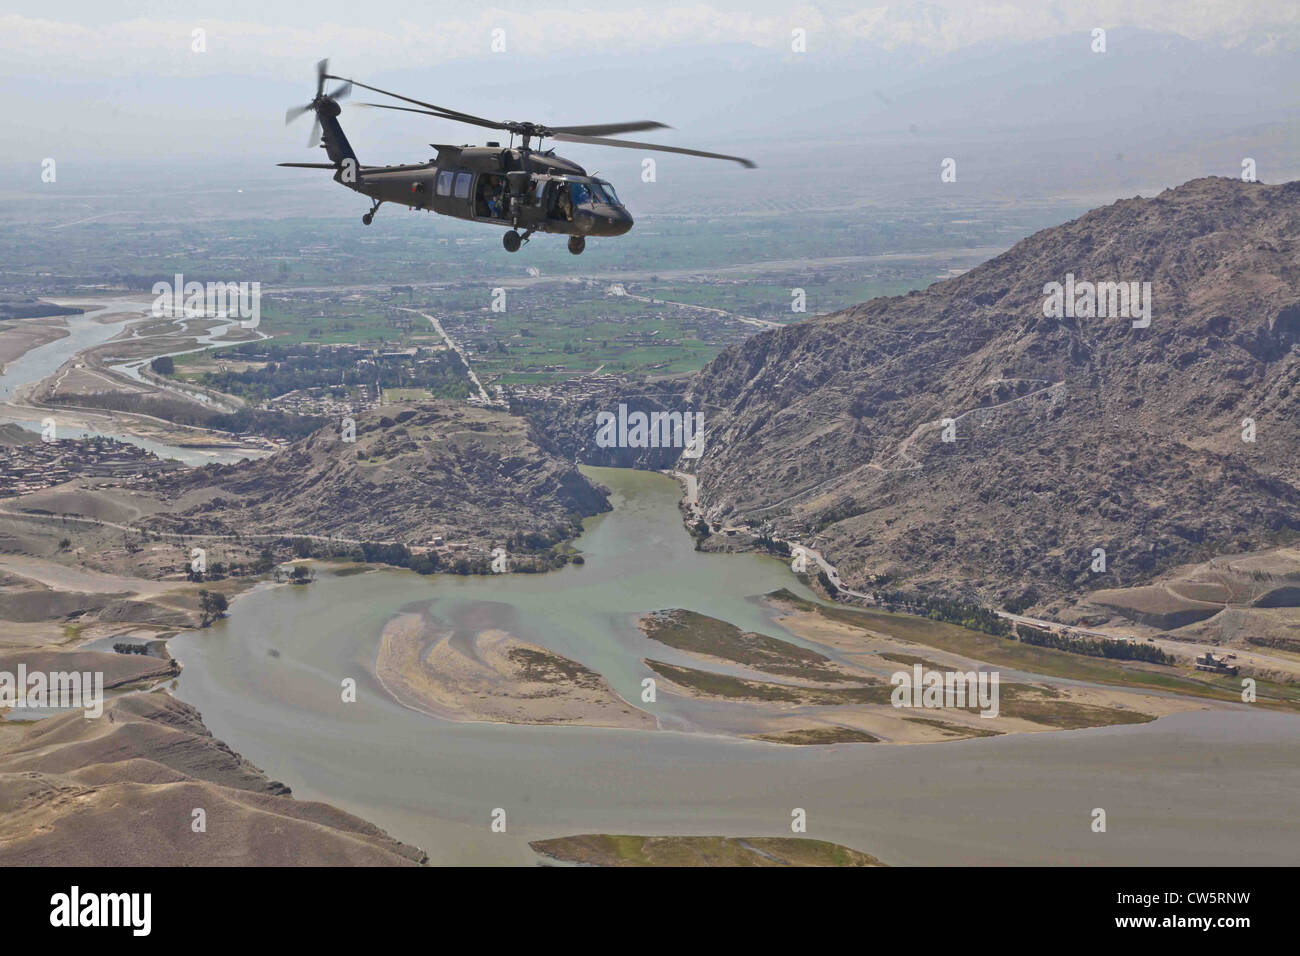 An US Army UH-60 Black Hawk Helicopter is flying to Forward Operating Base Torkham March 28, 2012 in Nangarhar province, - Stock Image